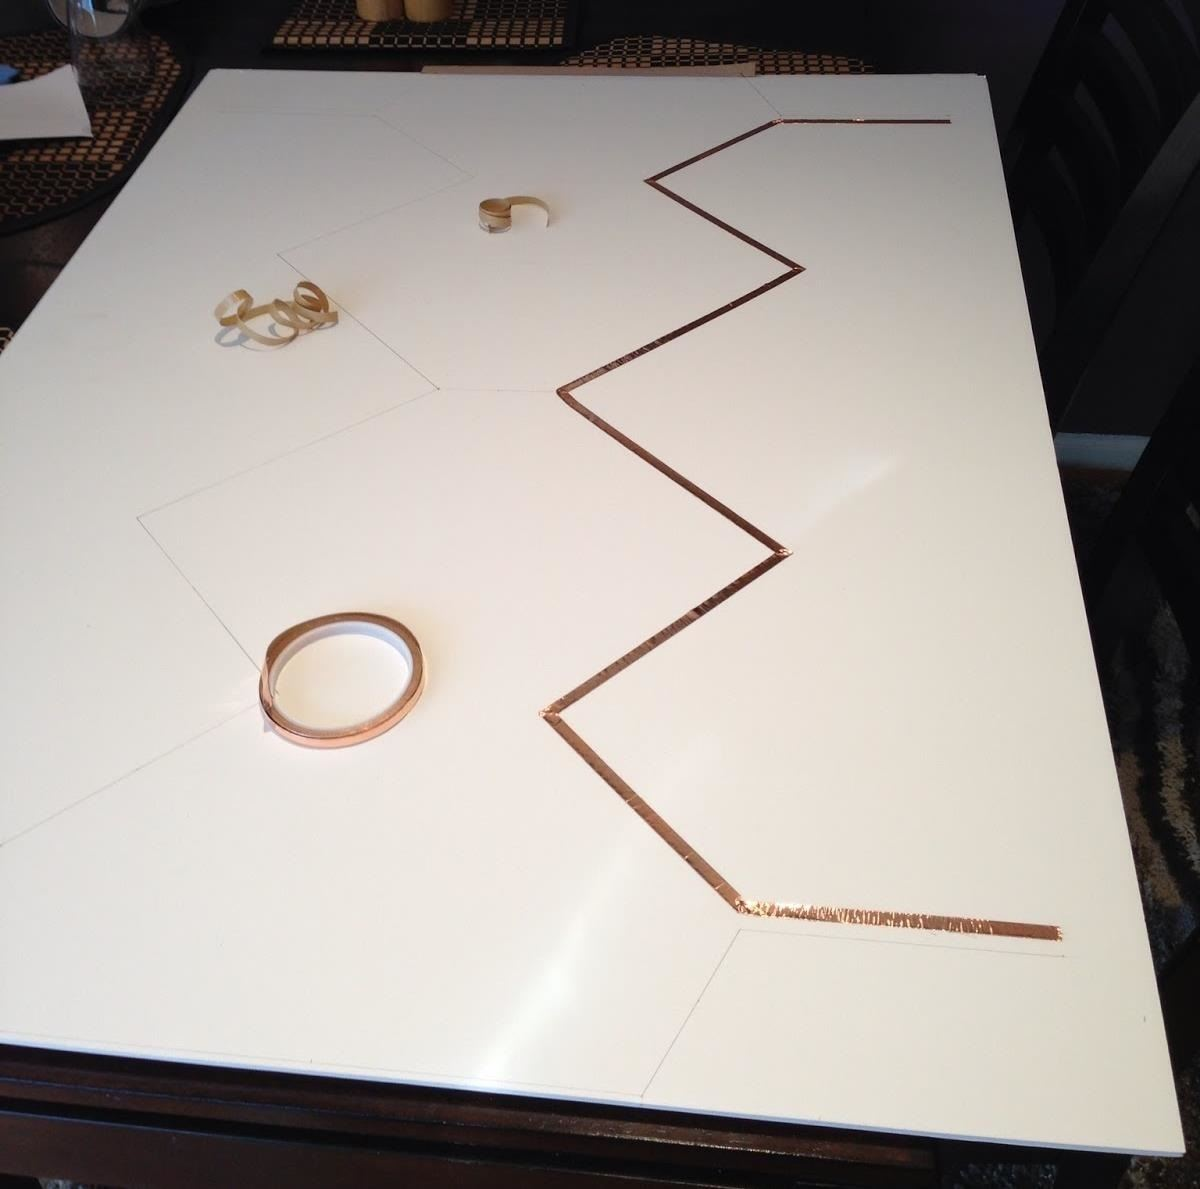 How To Build A 20 Super Antenna For Better Signal